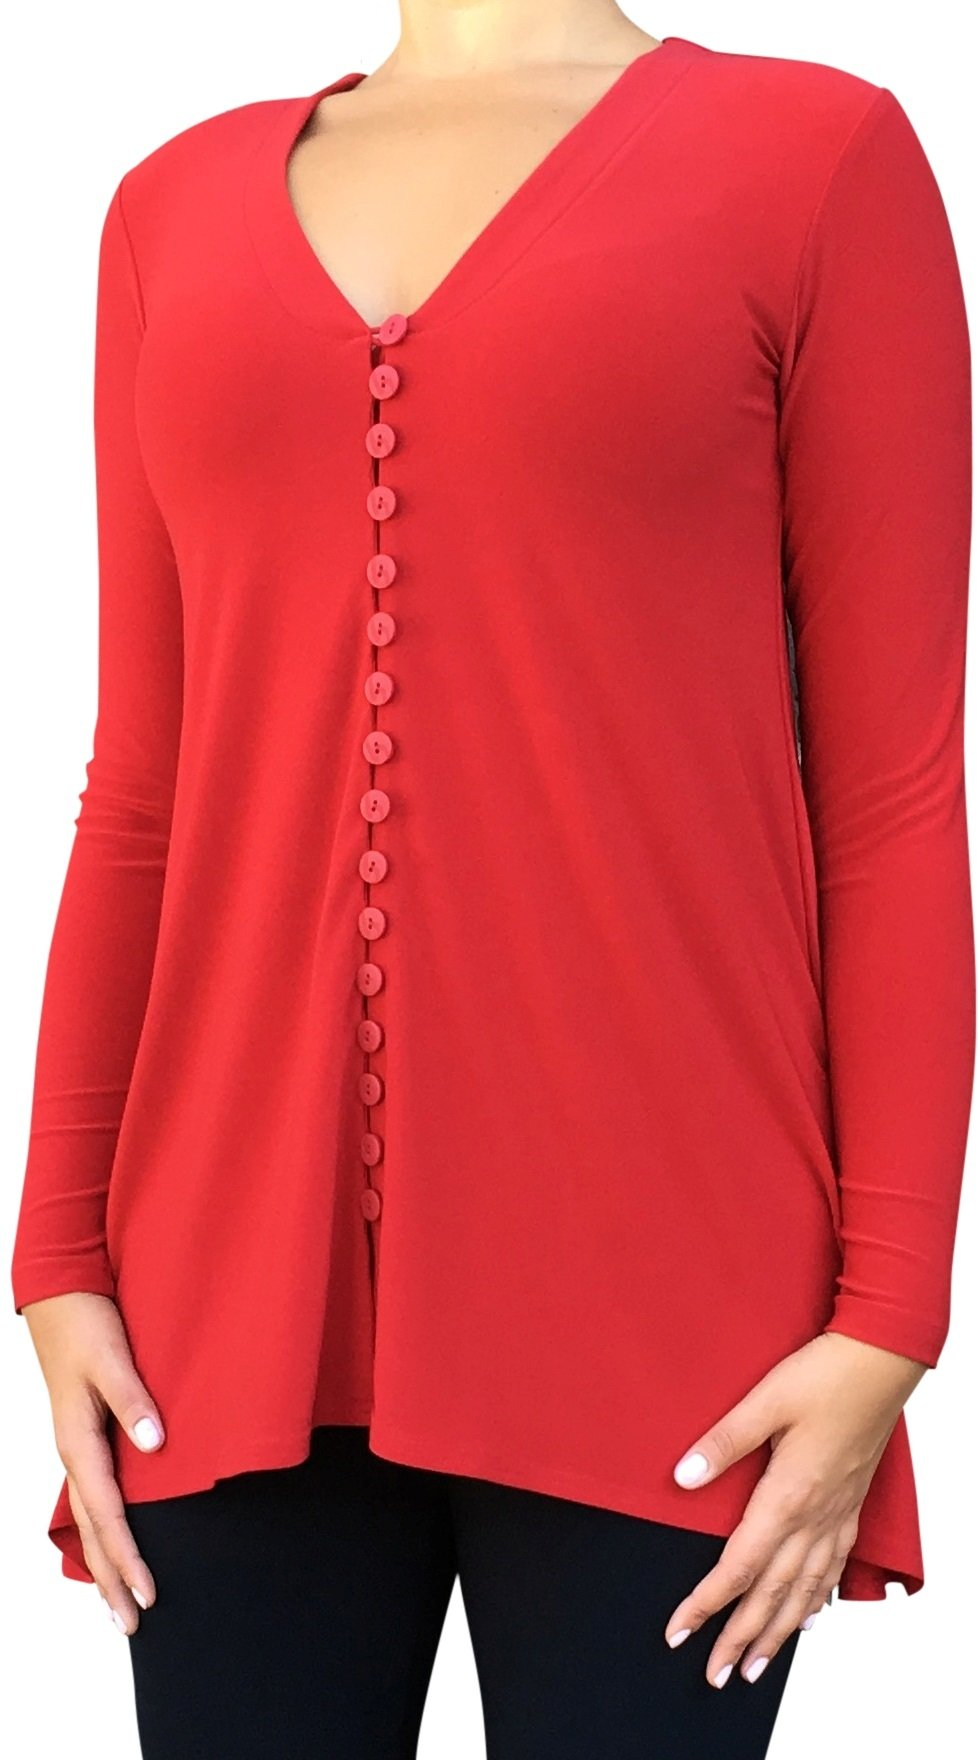 Sympli Womens DuoDiva Top Long Slv Size 14 Red